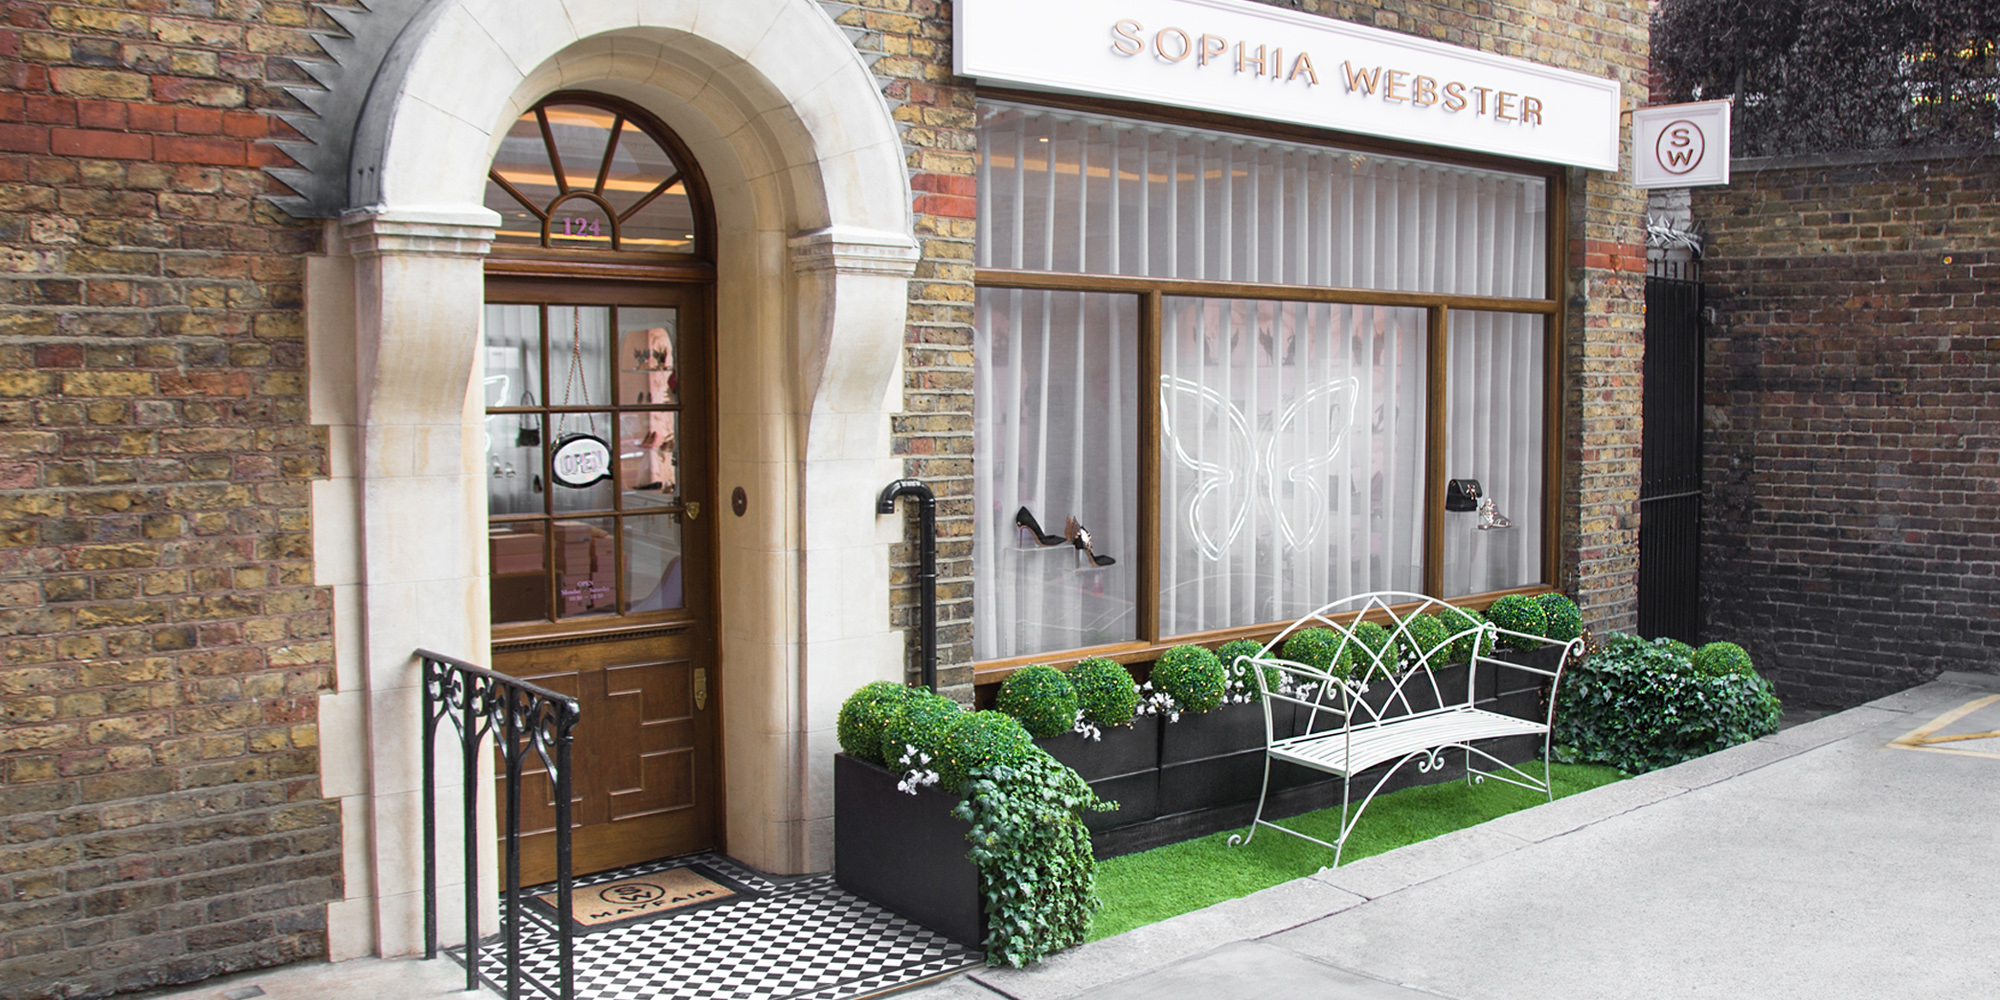 Sophia Webster Mayfair Store Shop Front